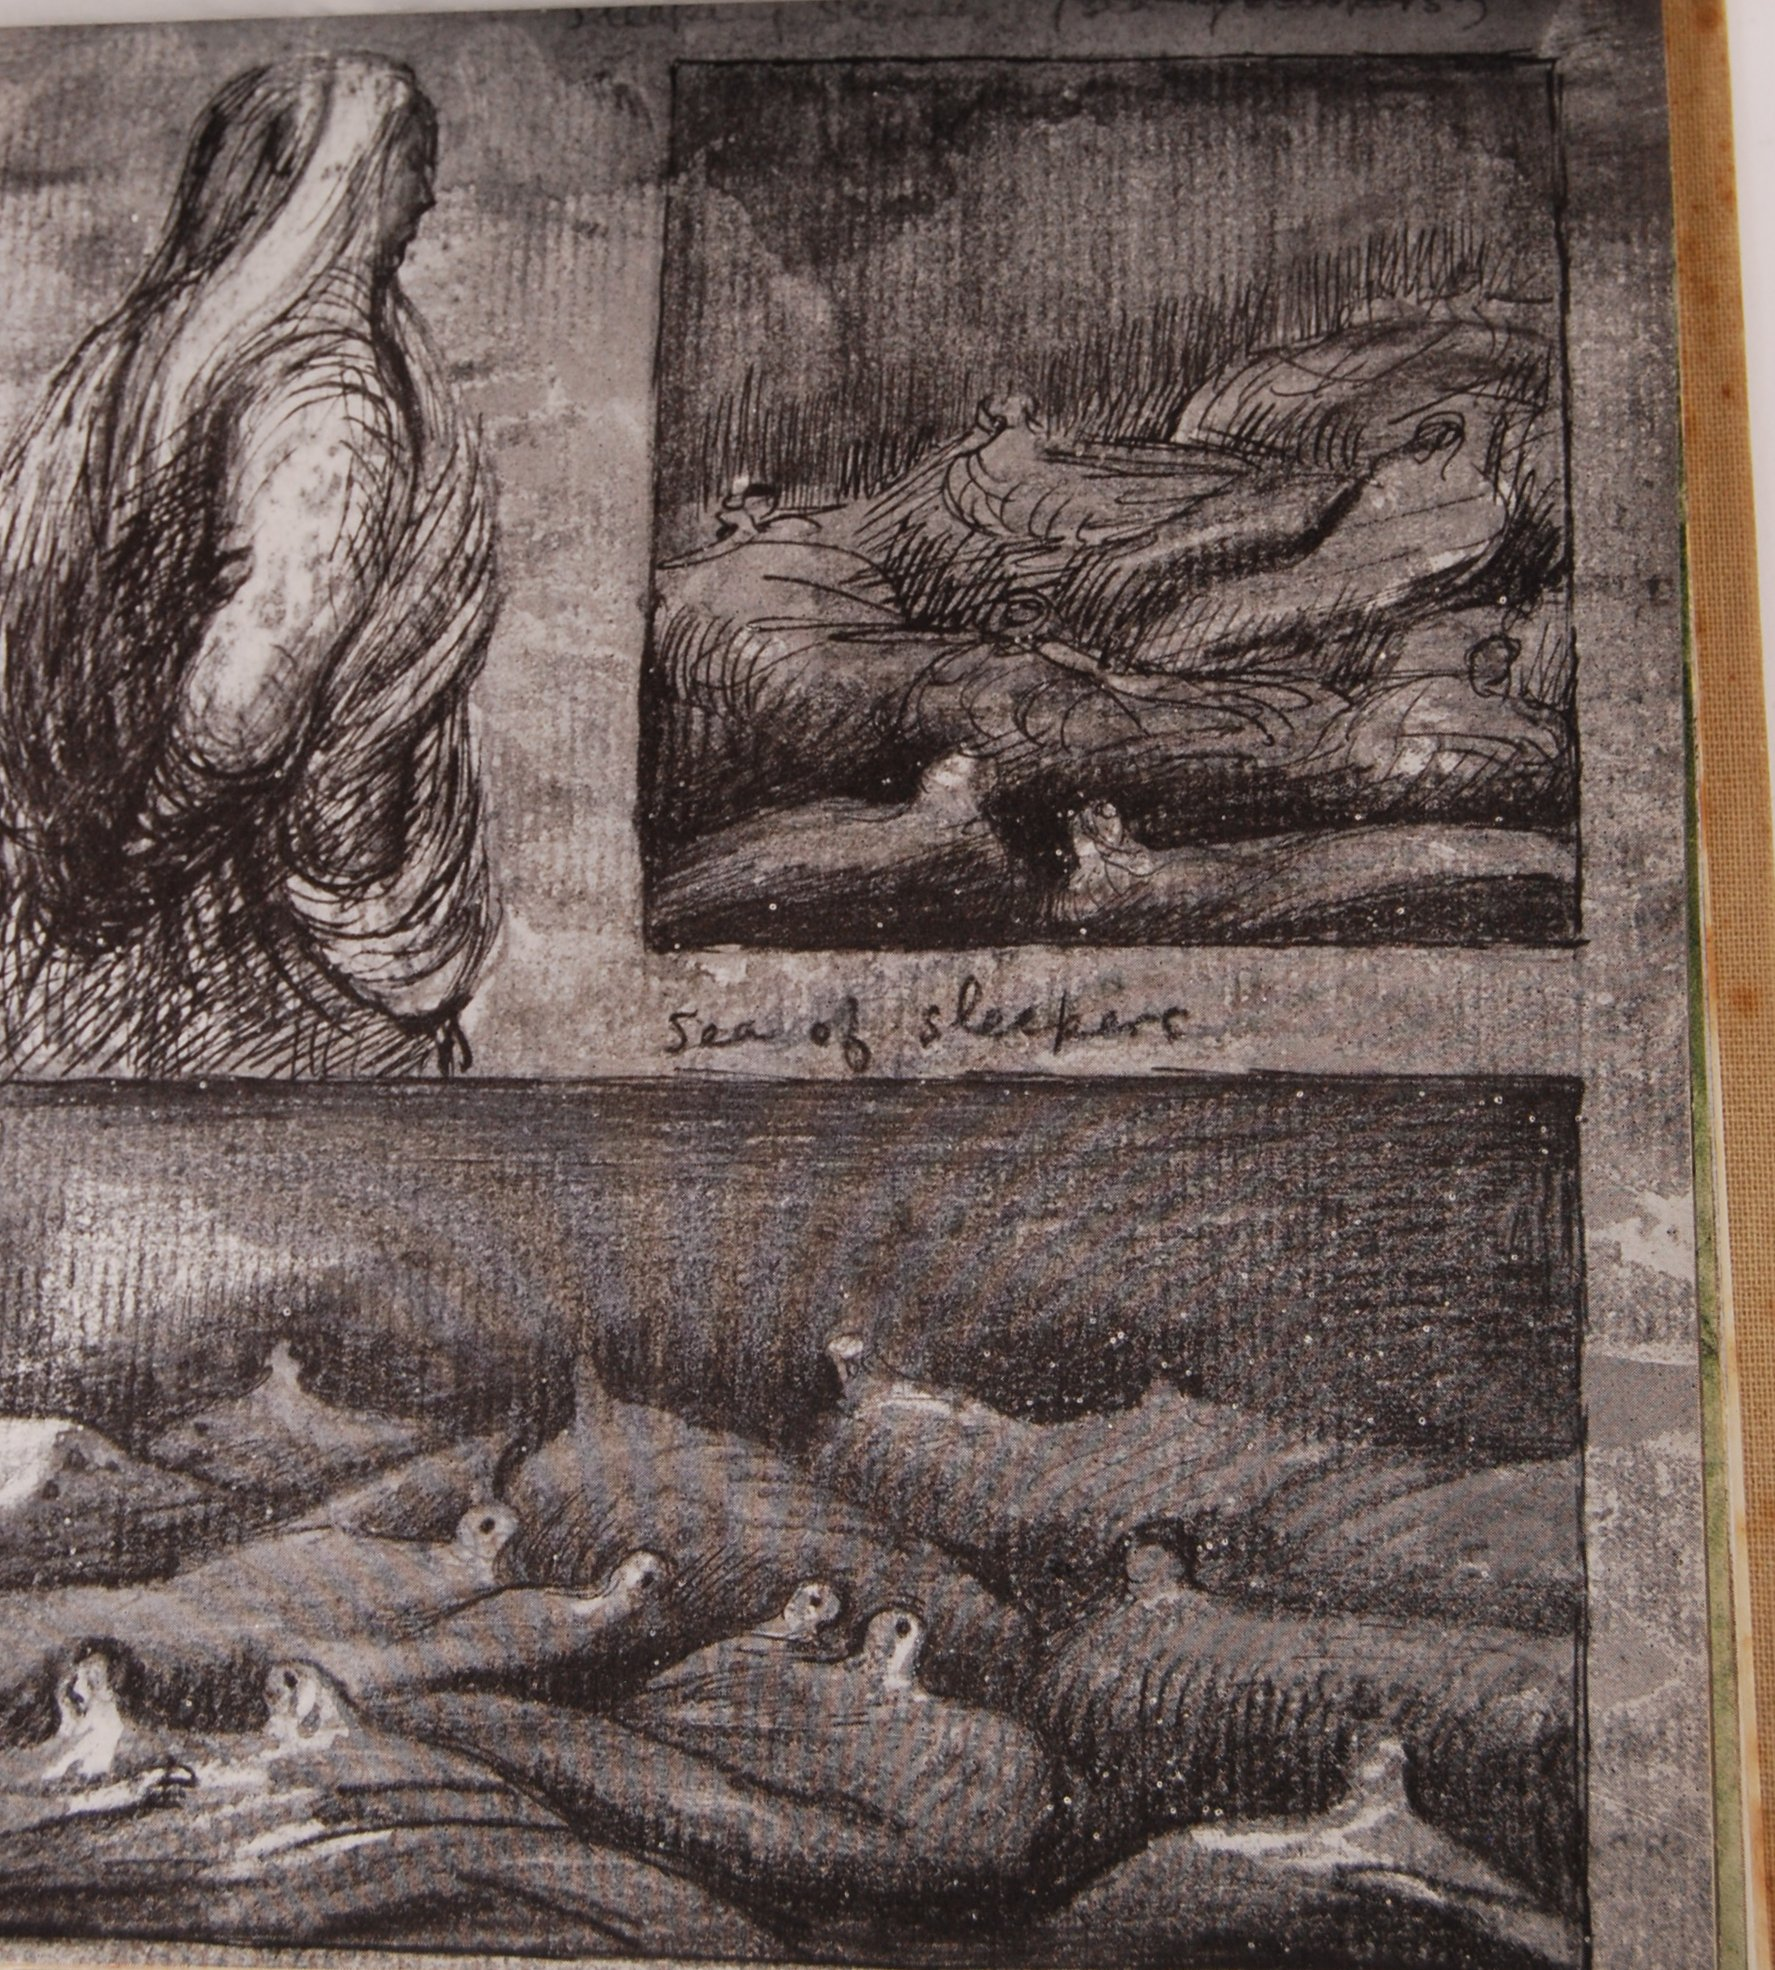 HENRY MOORE WWII SECOND WORLD WAR SHELTER SKETCH BOOK - Image 6 of 8